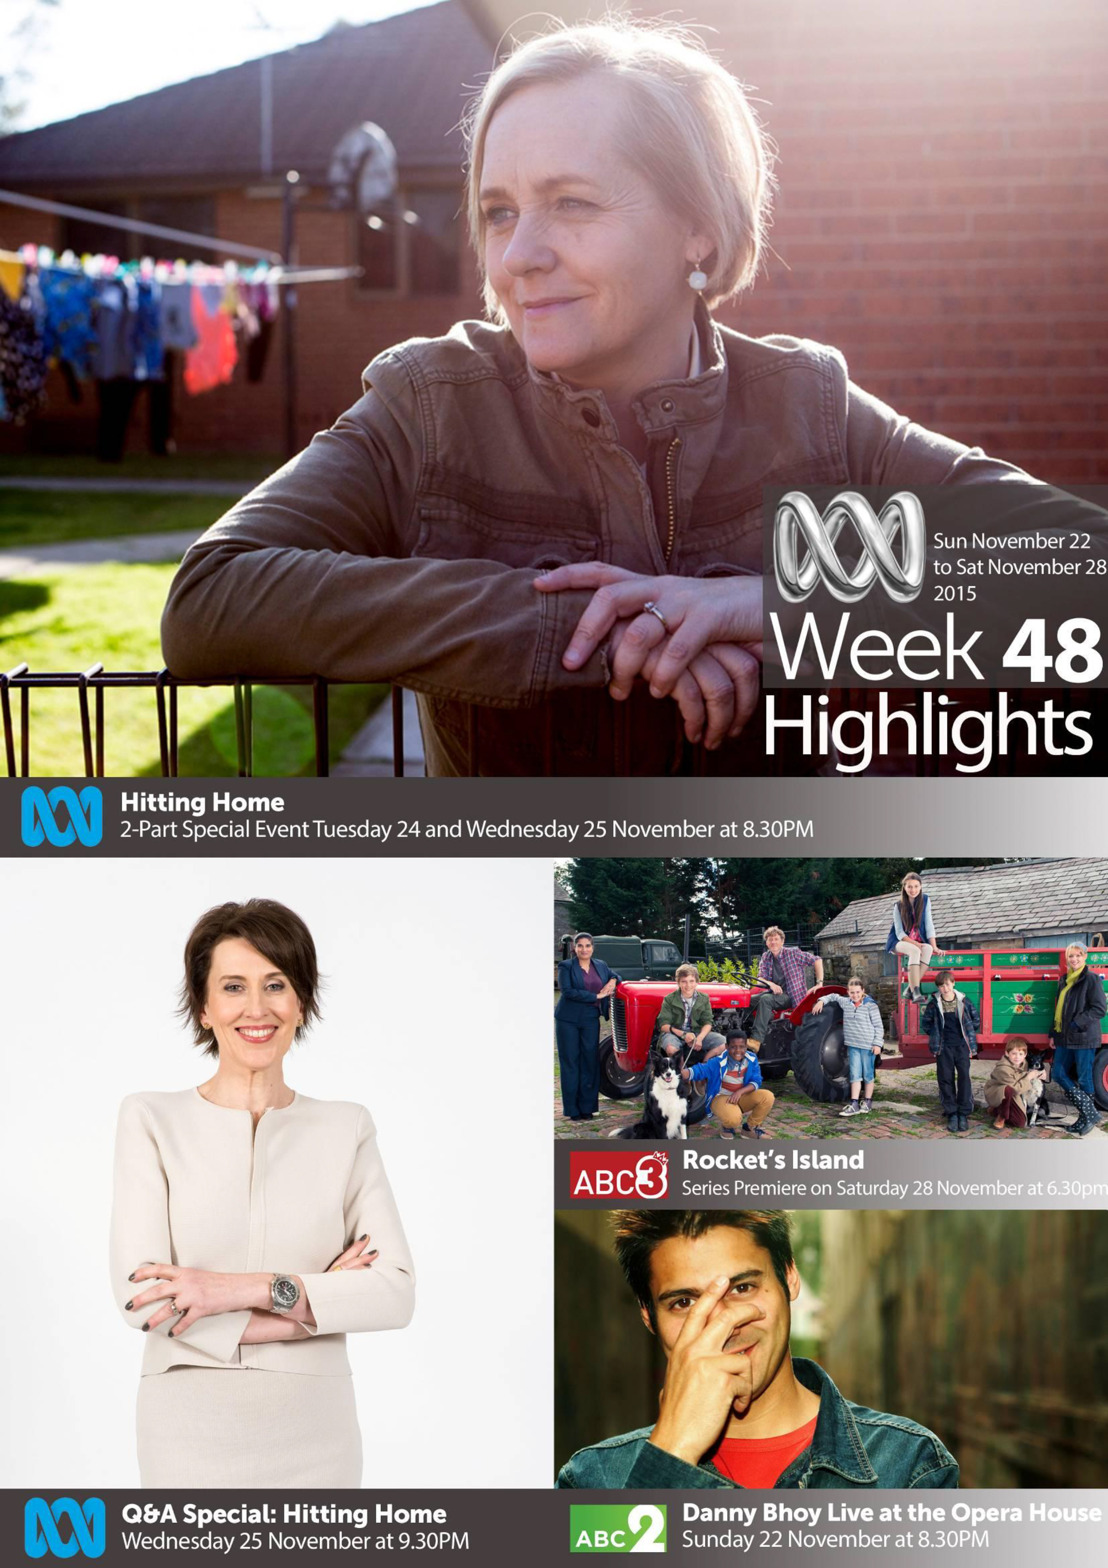 ABC TV Highlights - Week 48